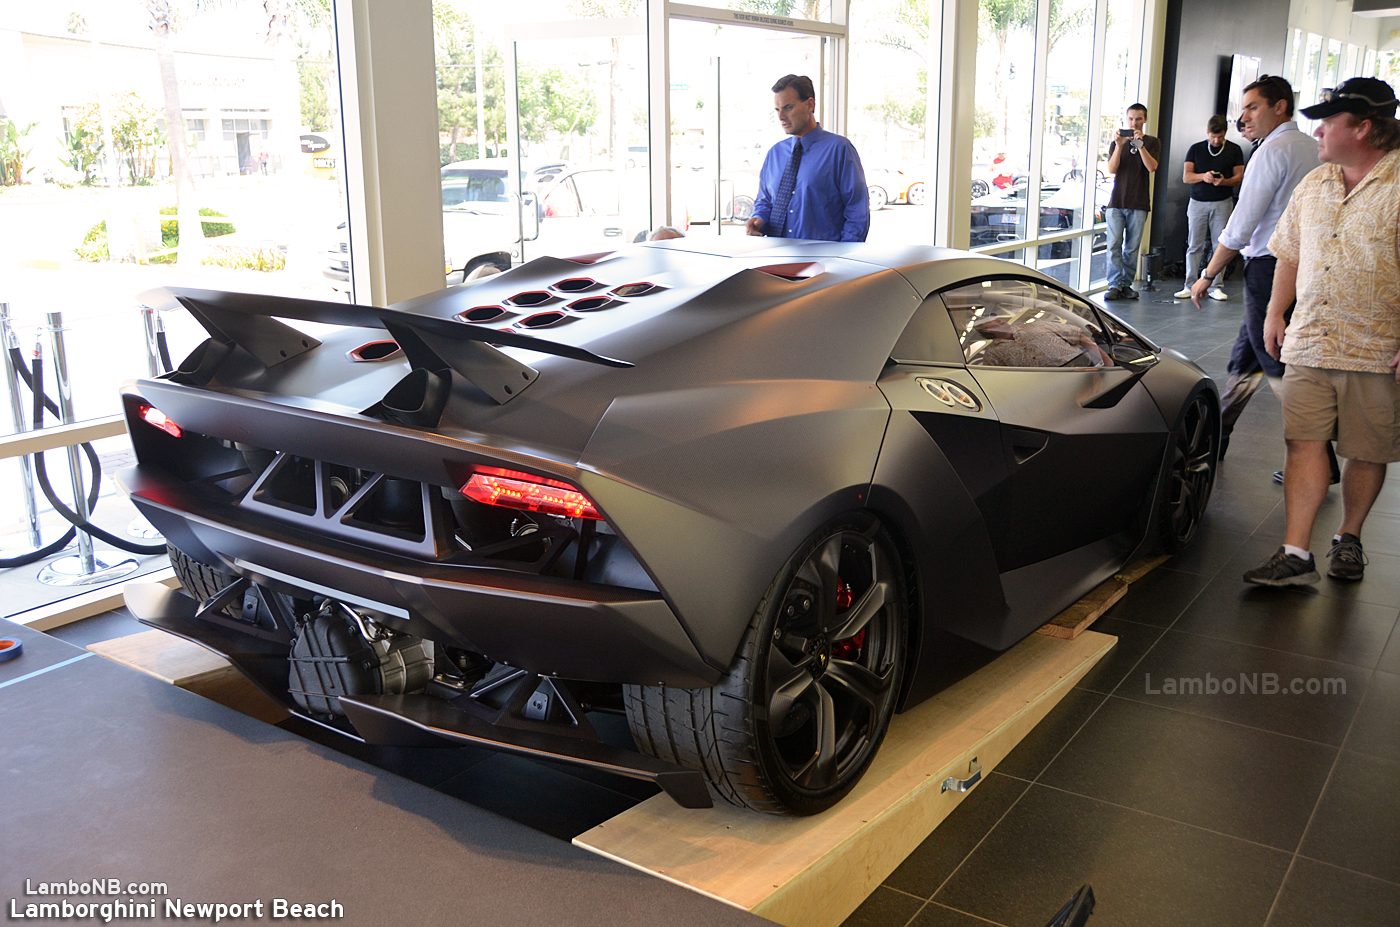 Lamborghini Newport Beach Blog: $2.2 Million Dollar Sesto Elemento Comes To Lamborghini  Newport Beach!